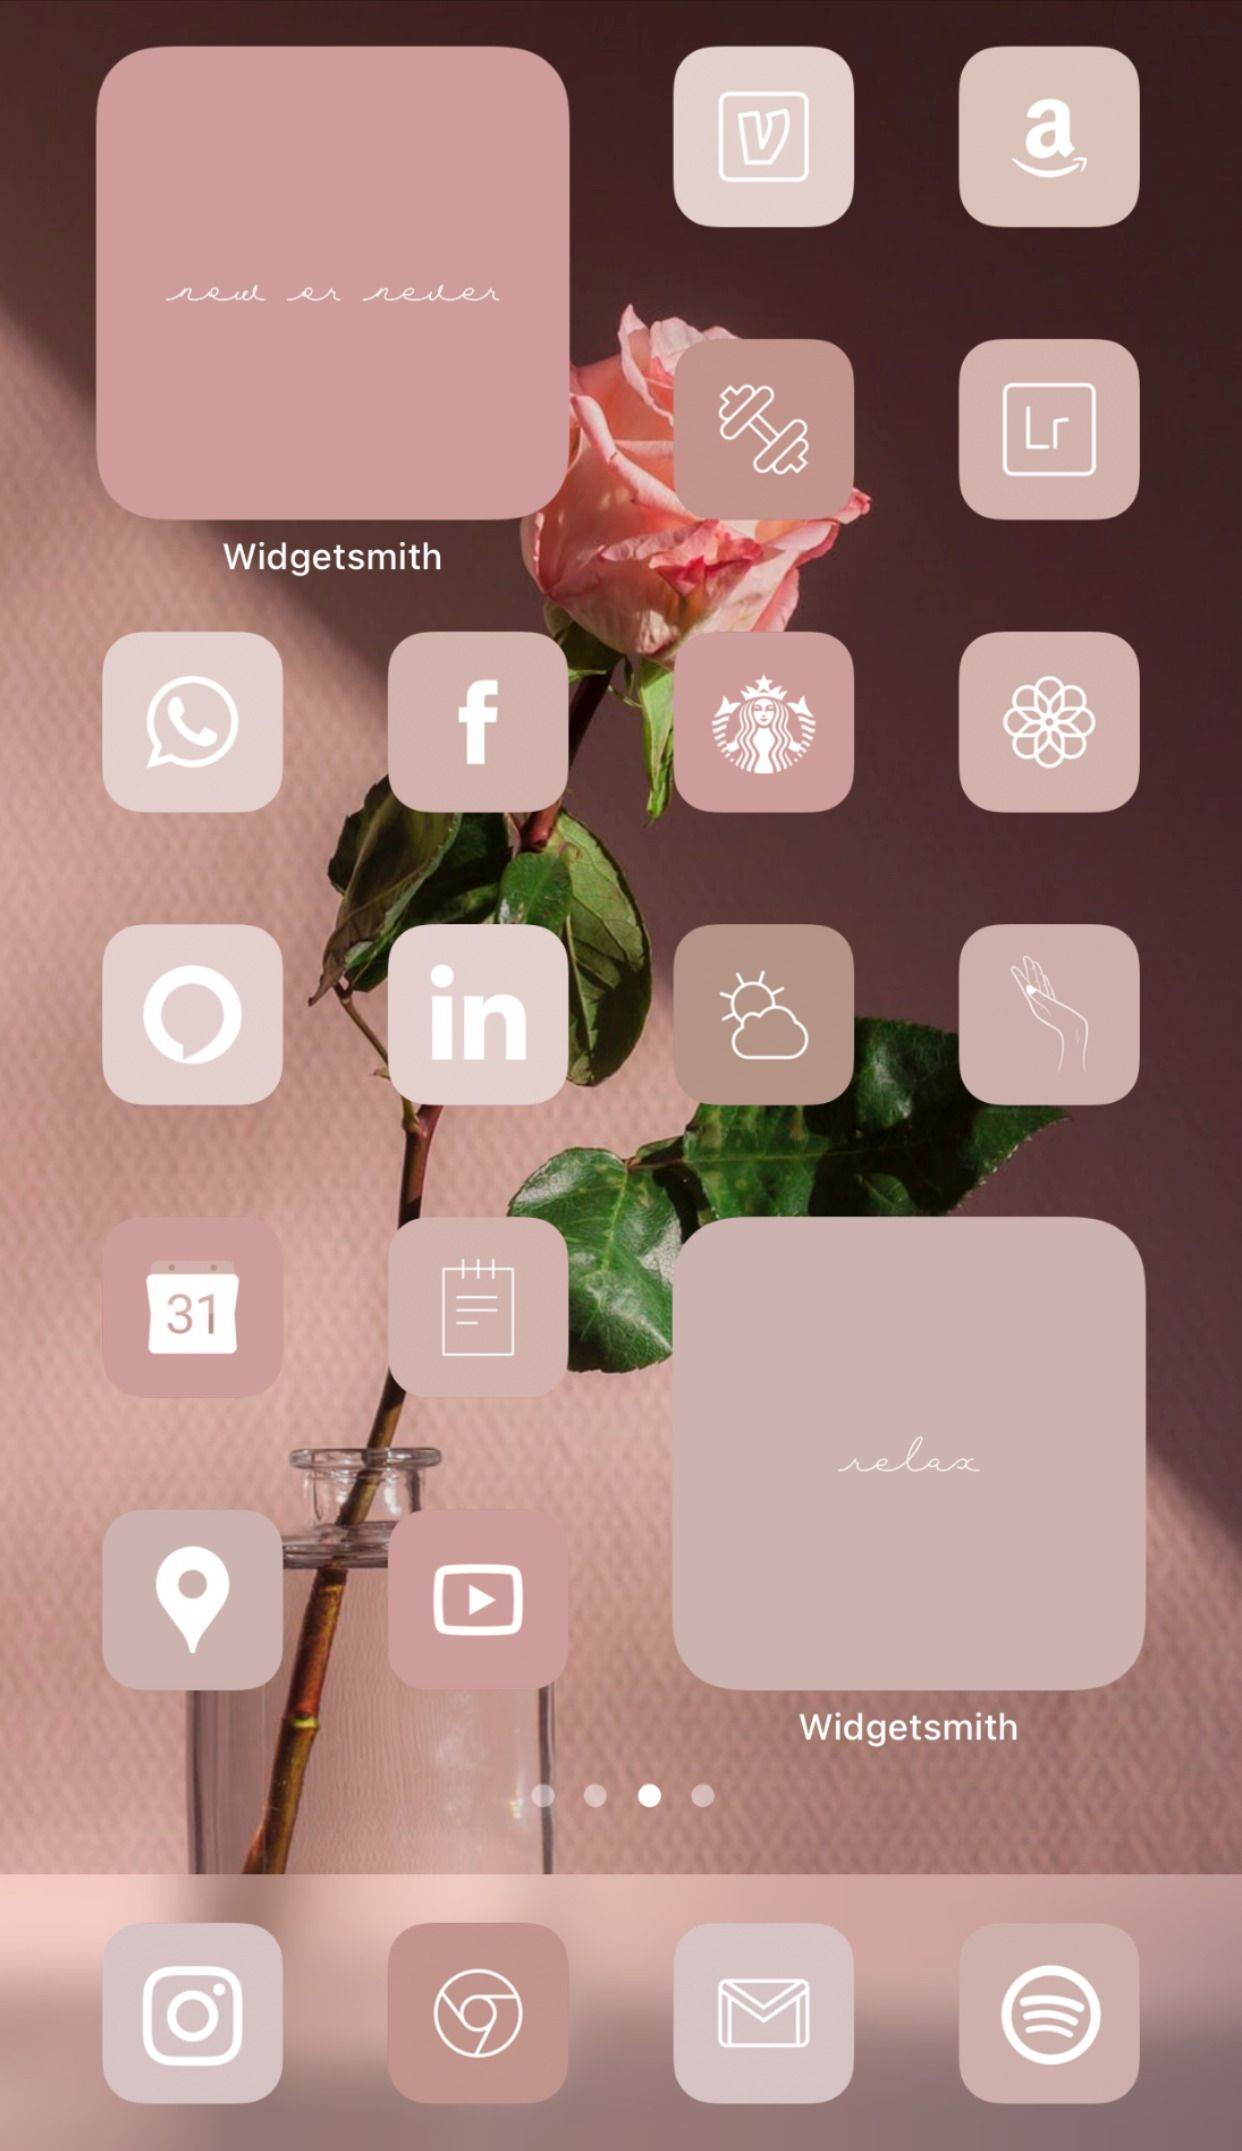 Warm Rose Neutral Aesthetic Iphone Home Screen Ideas Inspo Inspiration App Covers App Icons Ios 14 In 2020 App Icon Iphone App Layout Iphone Wallpaper Tumblr Aesthetic